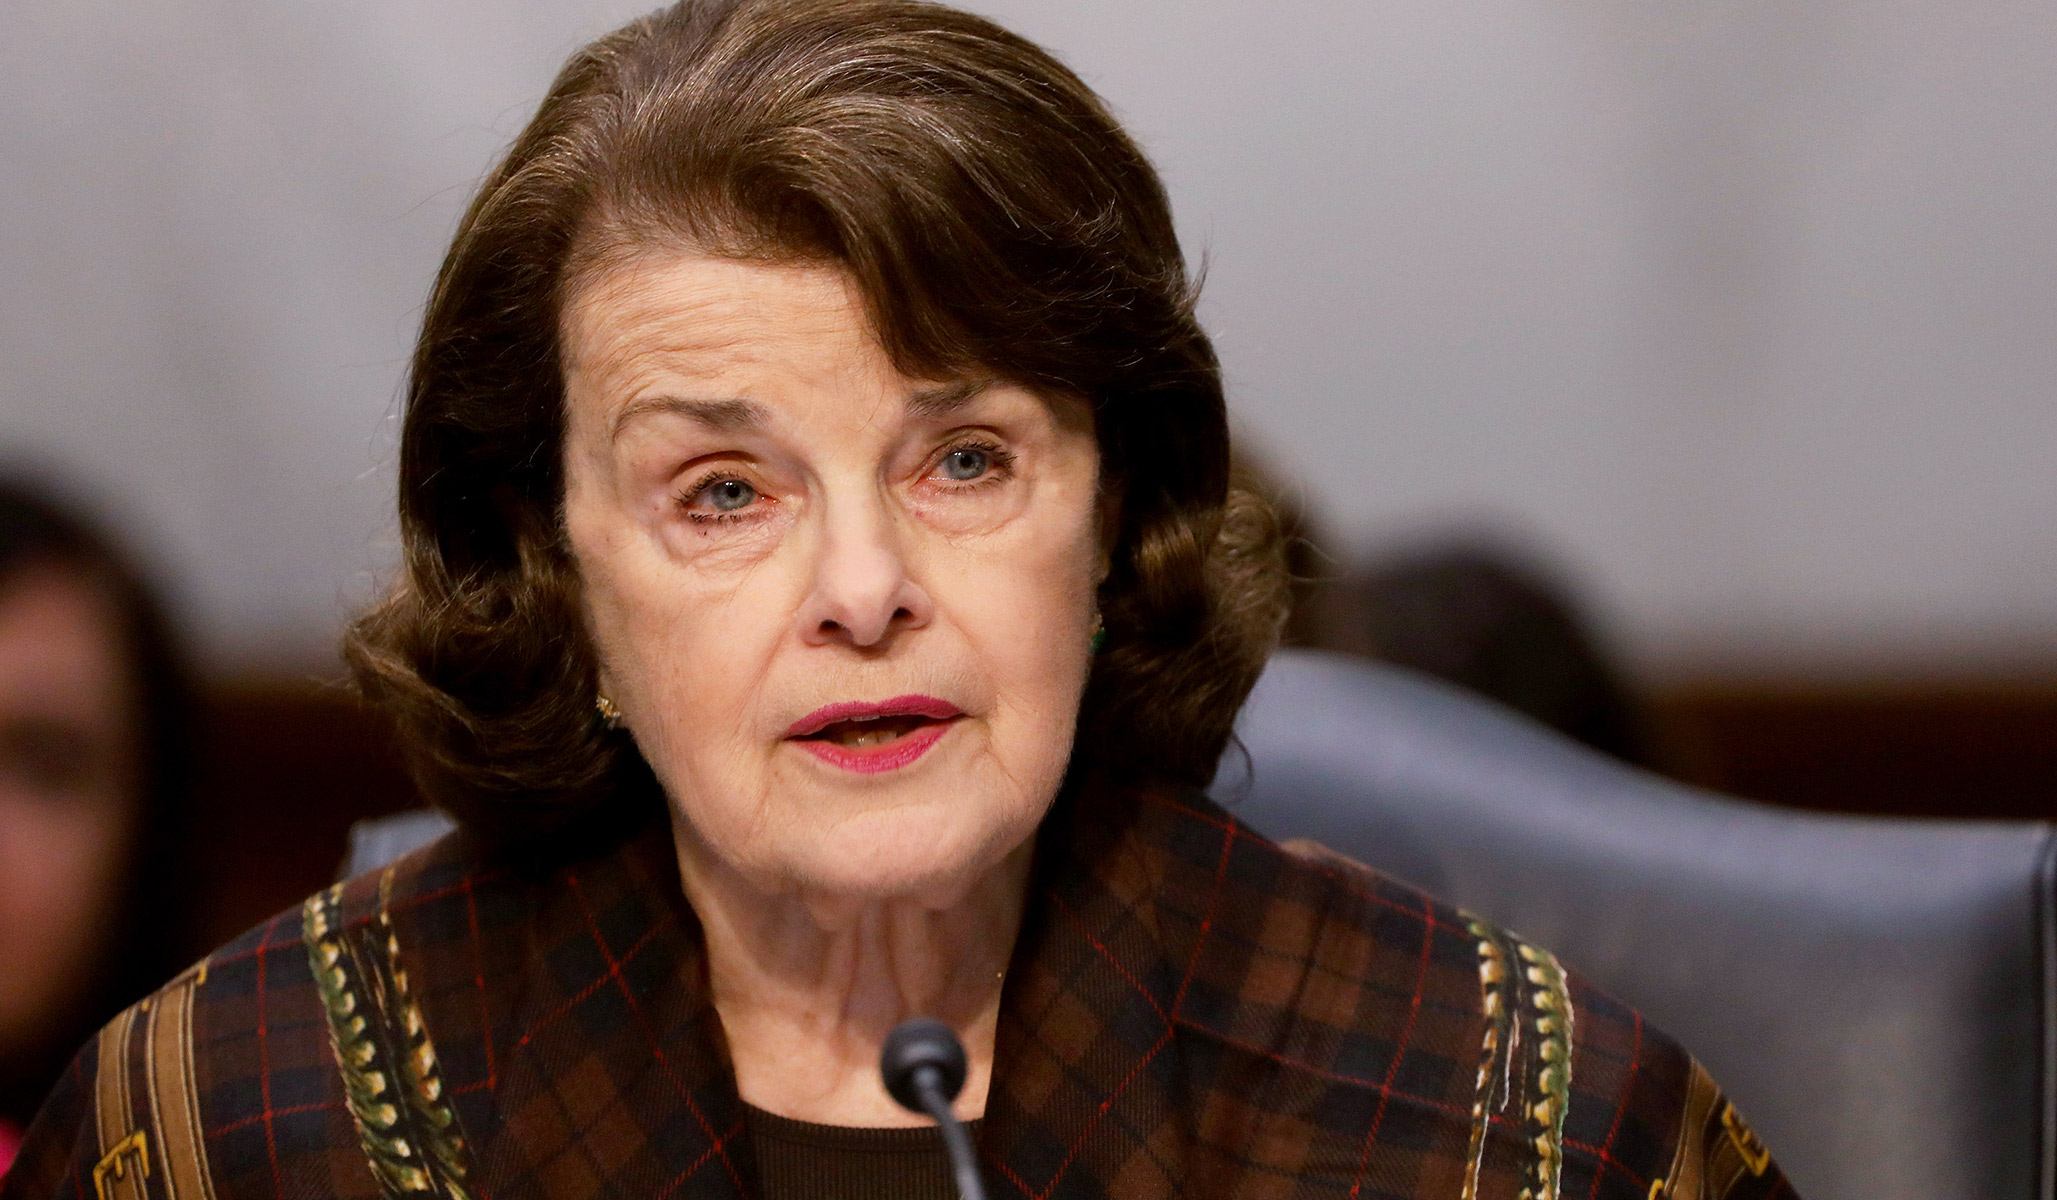 nationalreview.com - Jack Crowe - Dianne Feinstein on Brett Kavanaugh Accusation: 'I Can't Say Everything is Truthful'